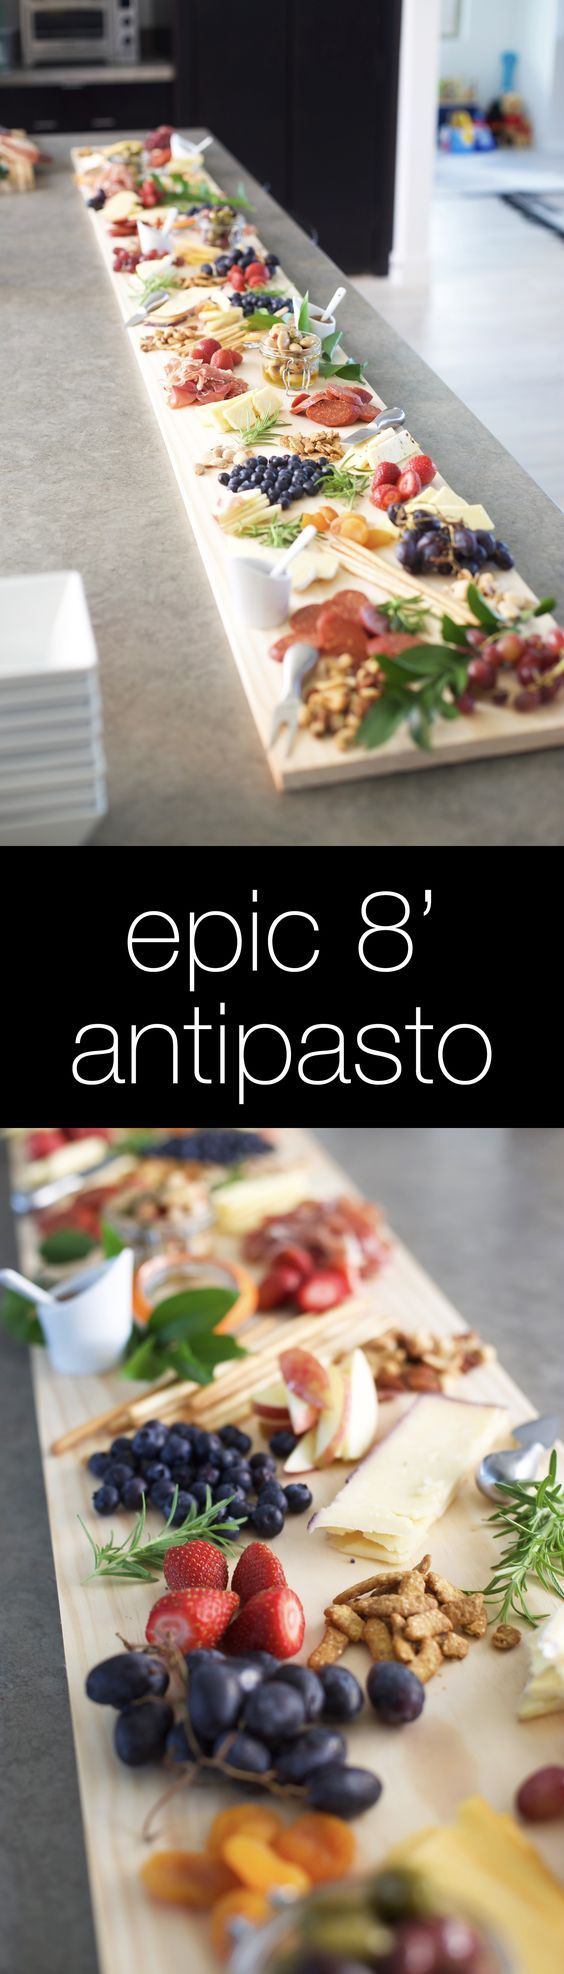 How to build an eight-foot-long antipasto board for your next party